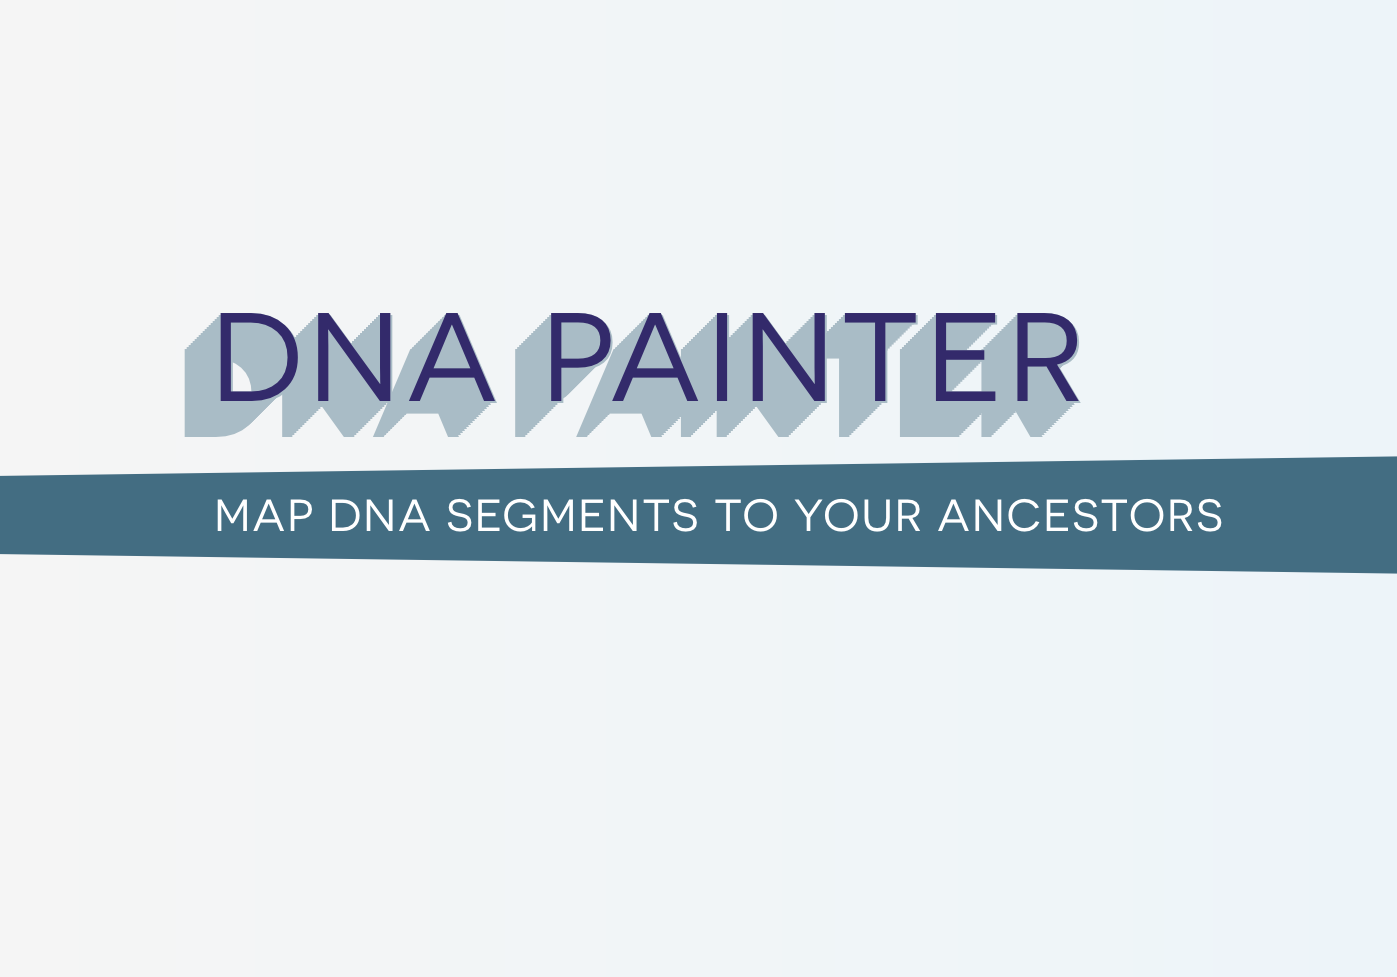 DNA Painter | Chromosome Mapping | Map segments to ancestors